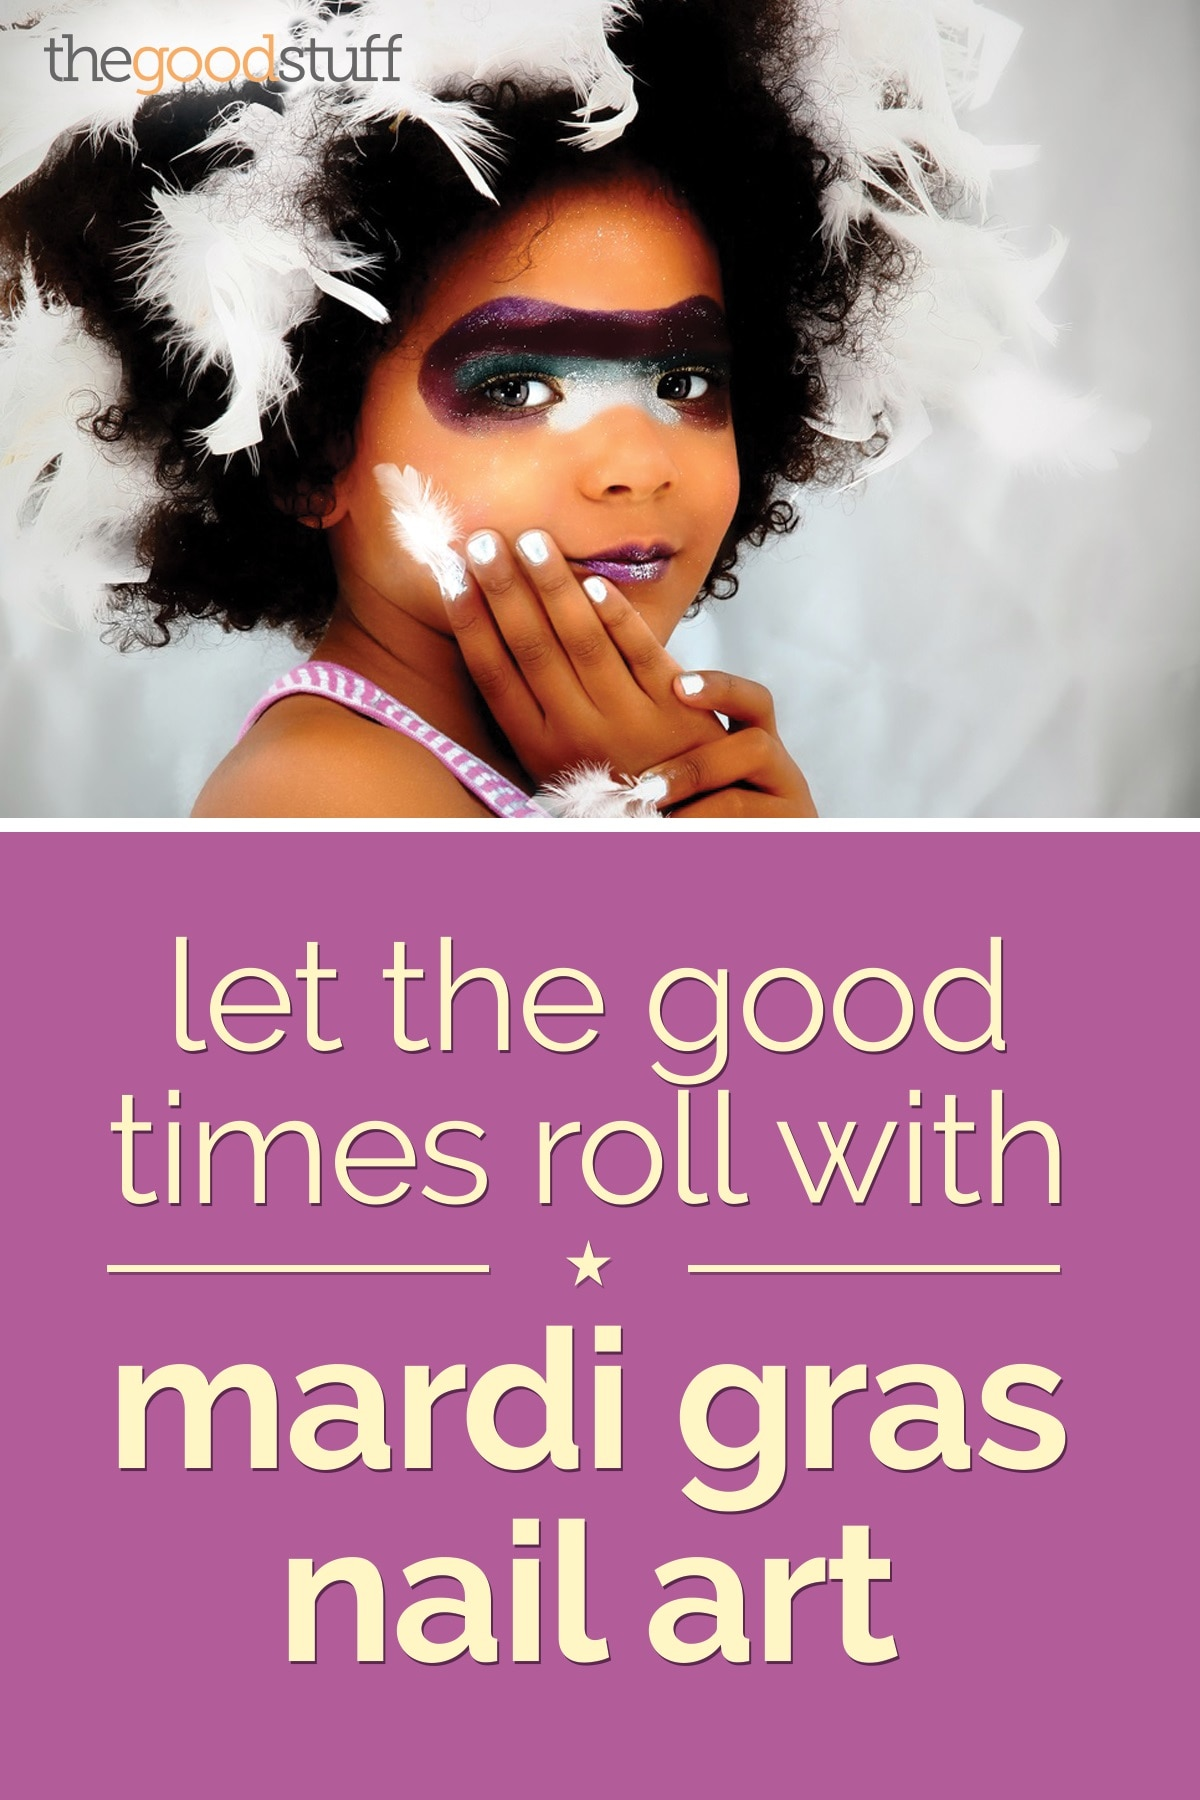 self-mardi-gras-nail-art